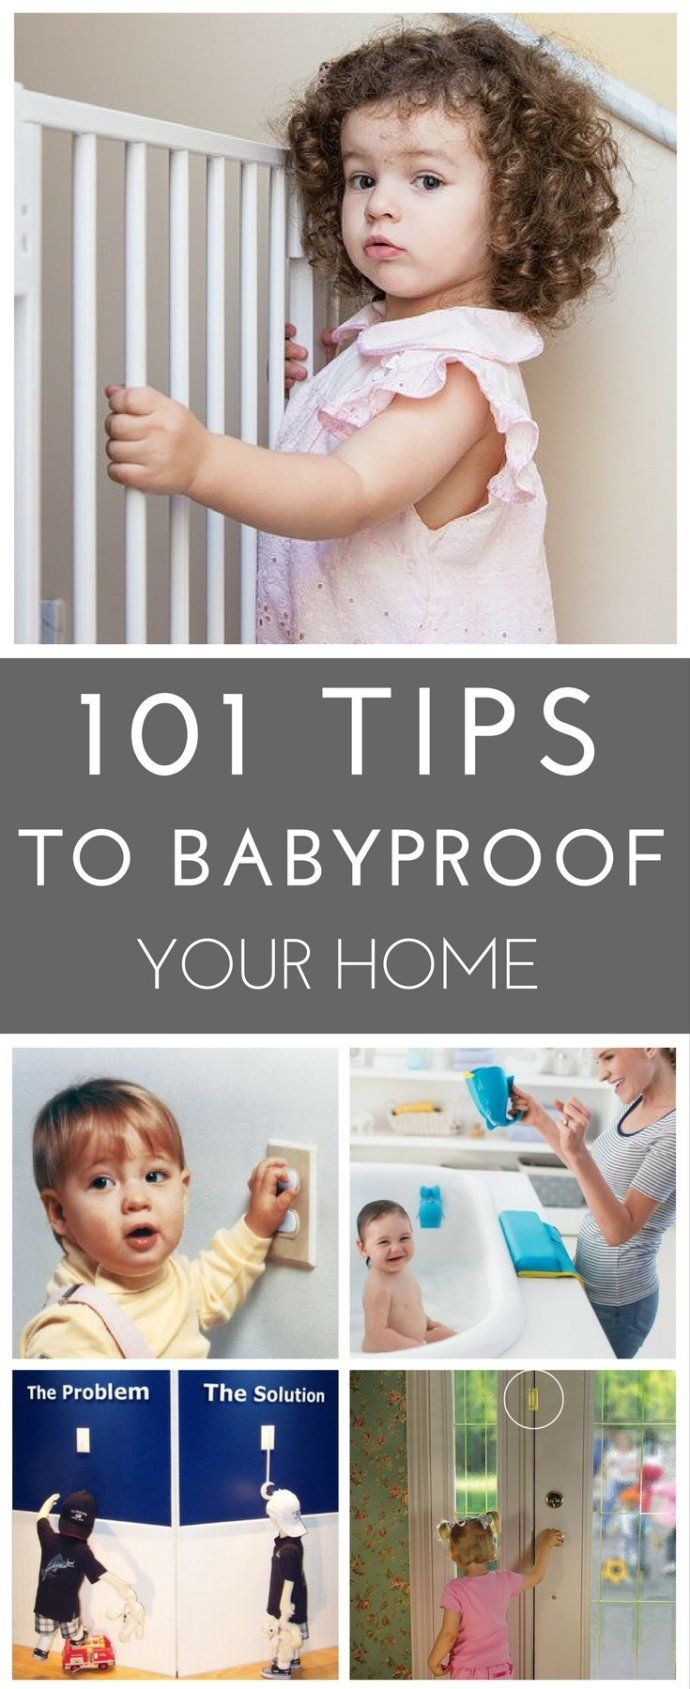 Easy Steps for Childproofing